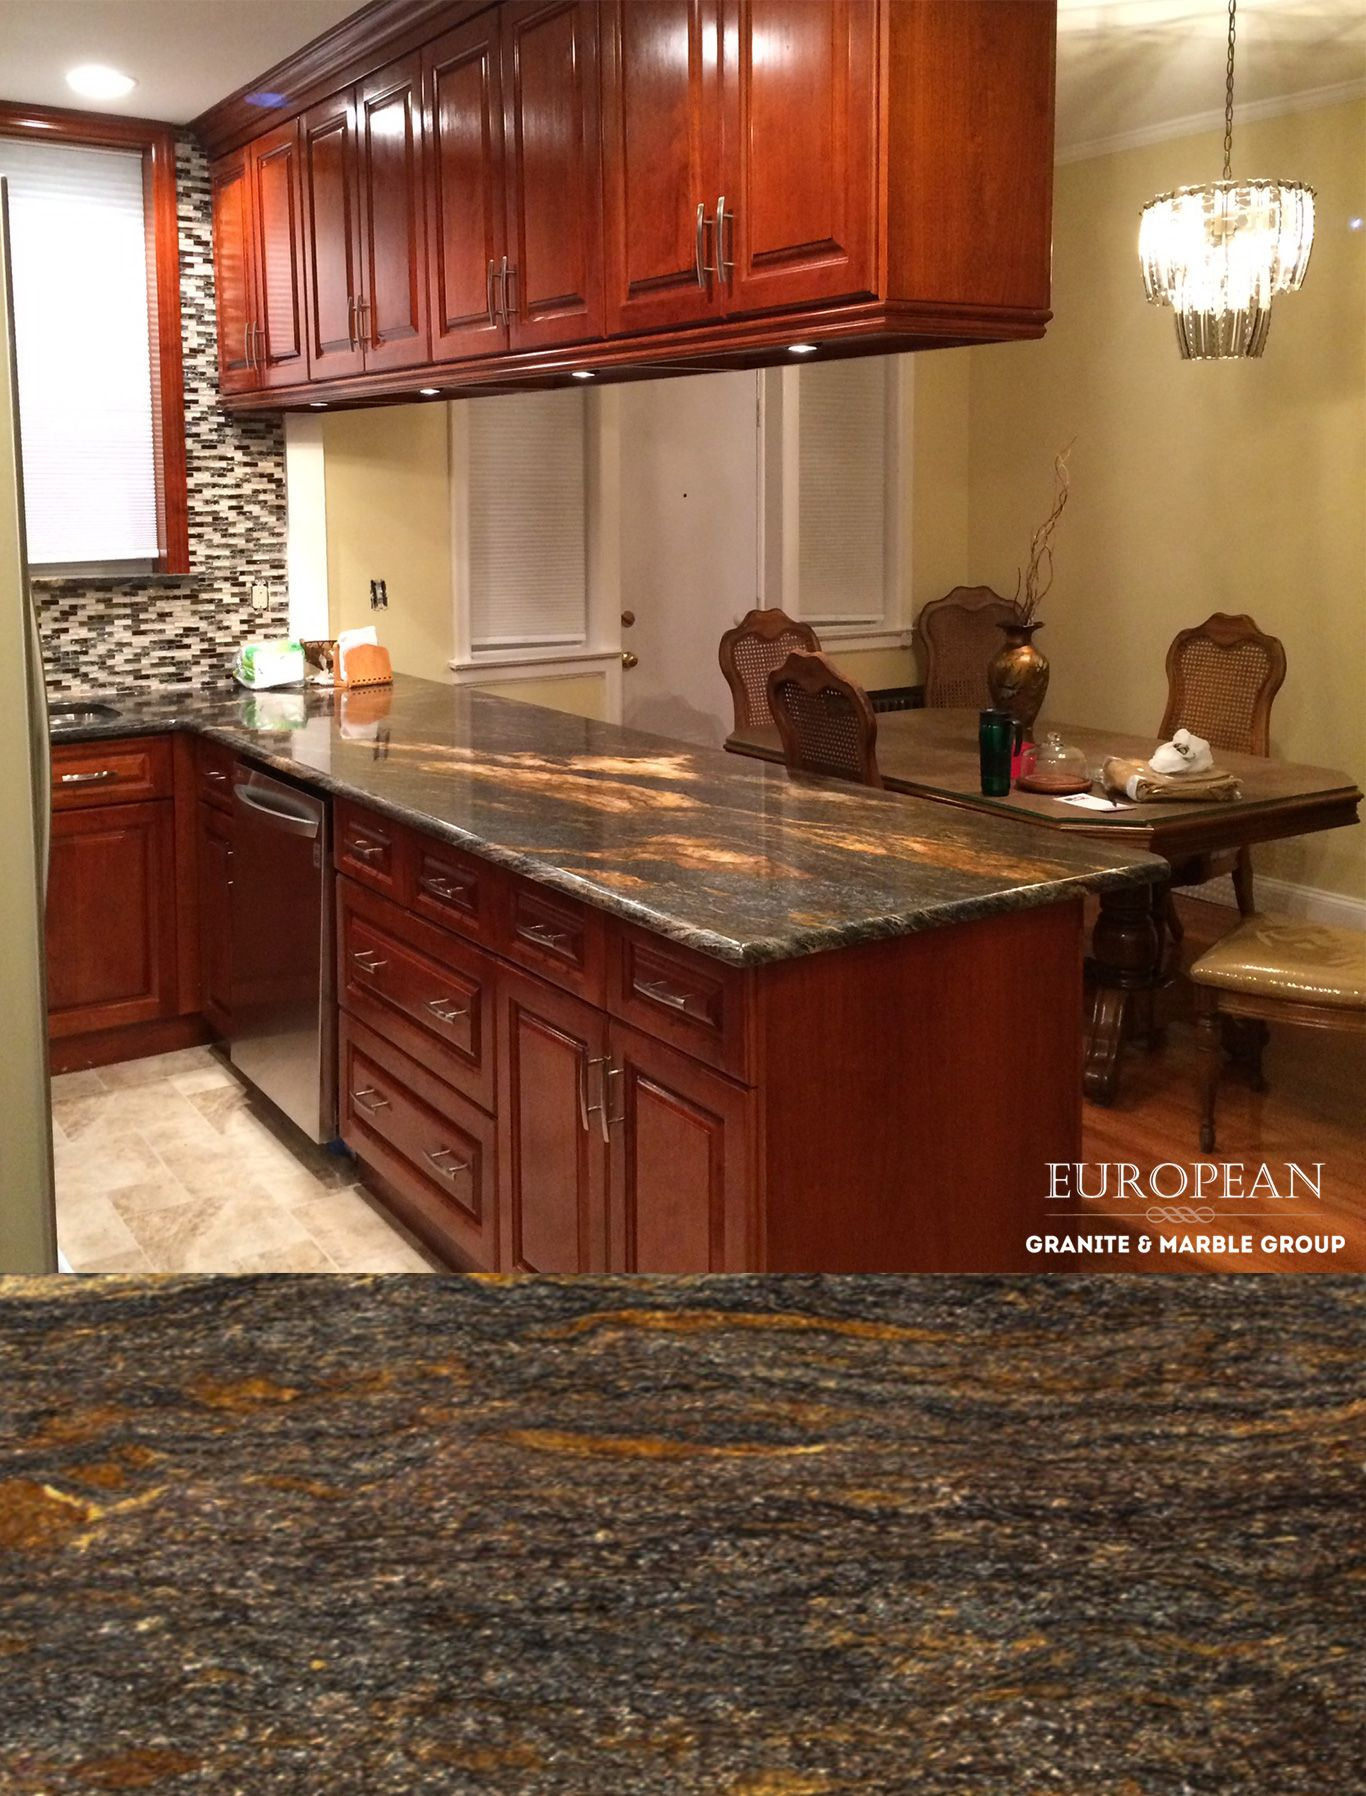 This kitchen design features Orion granite countertops. Orion ...